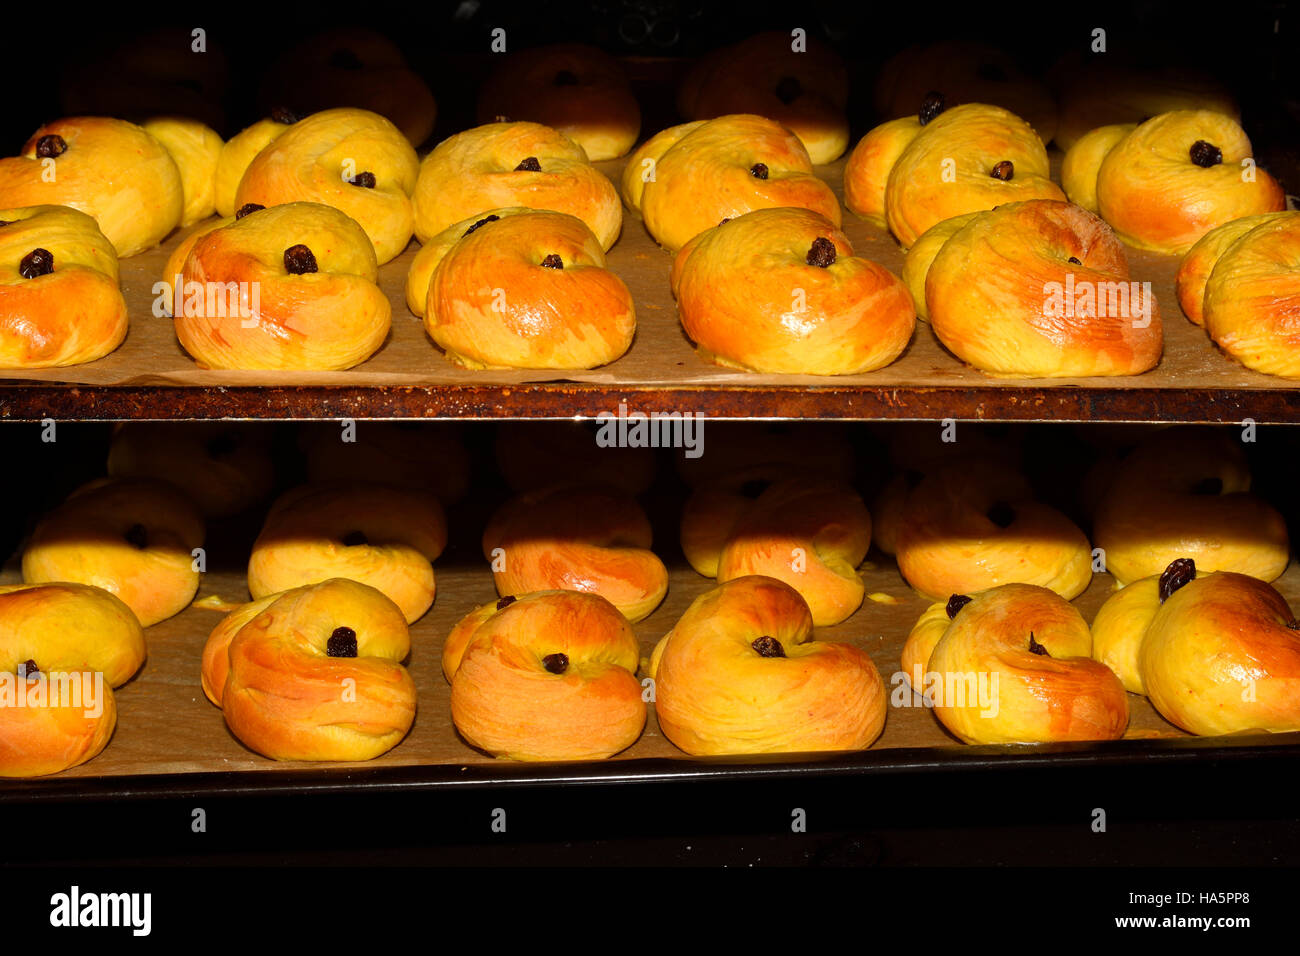 Home made Lucia bakery with raisin in oven. - Stock Image